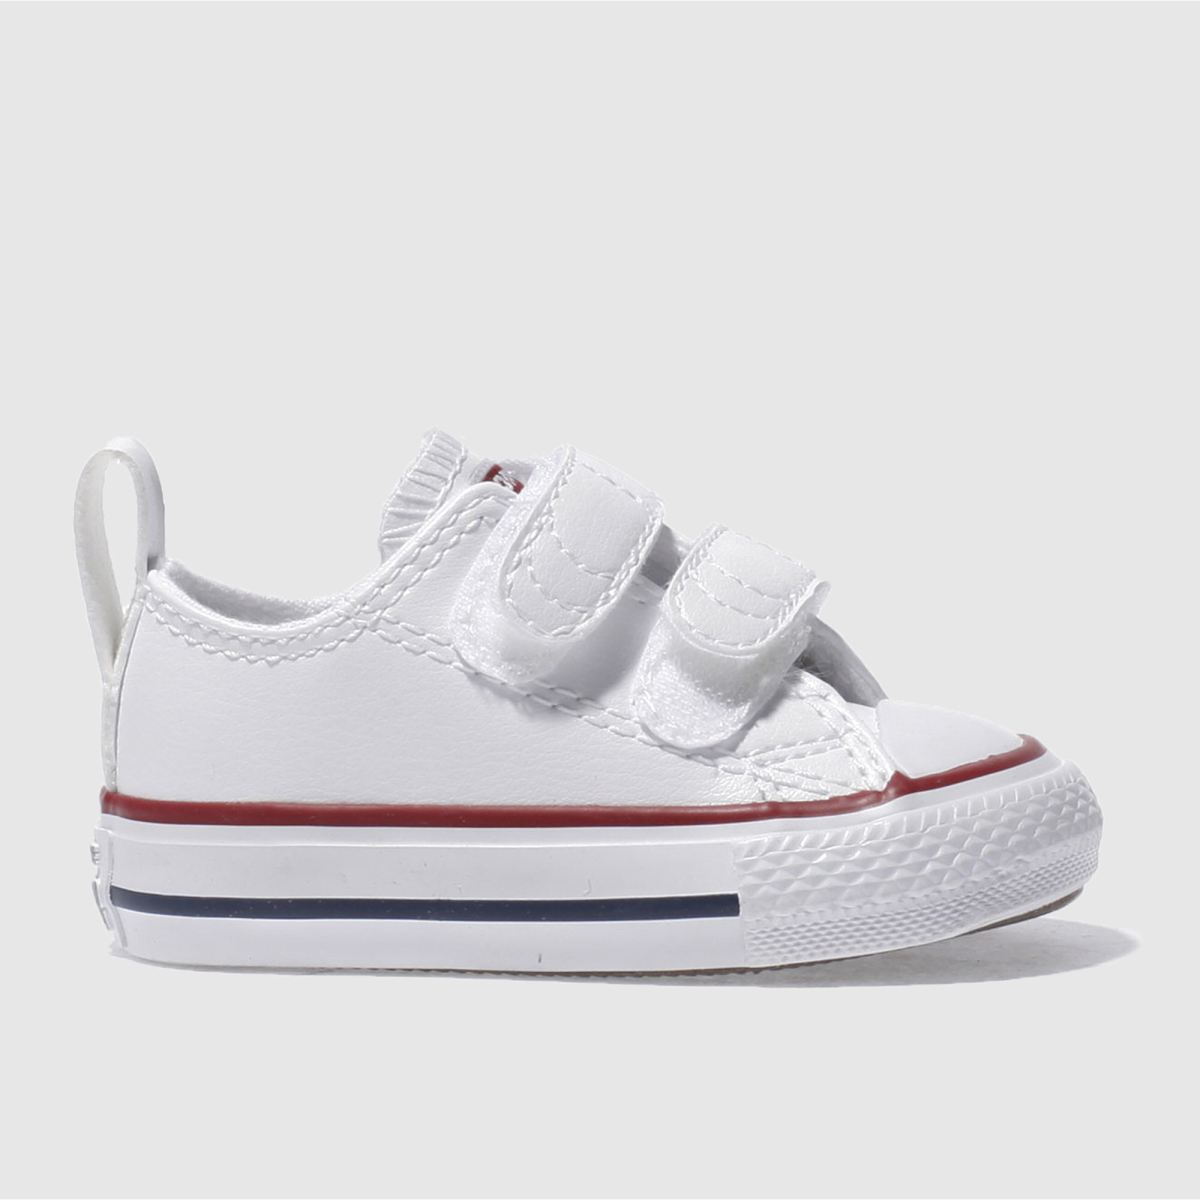 converse white & red all star 2v Toddler Trainers